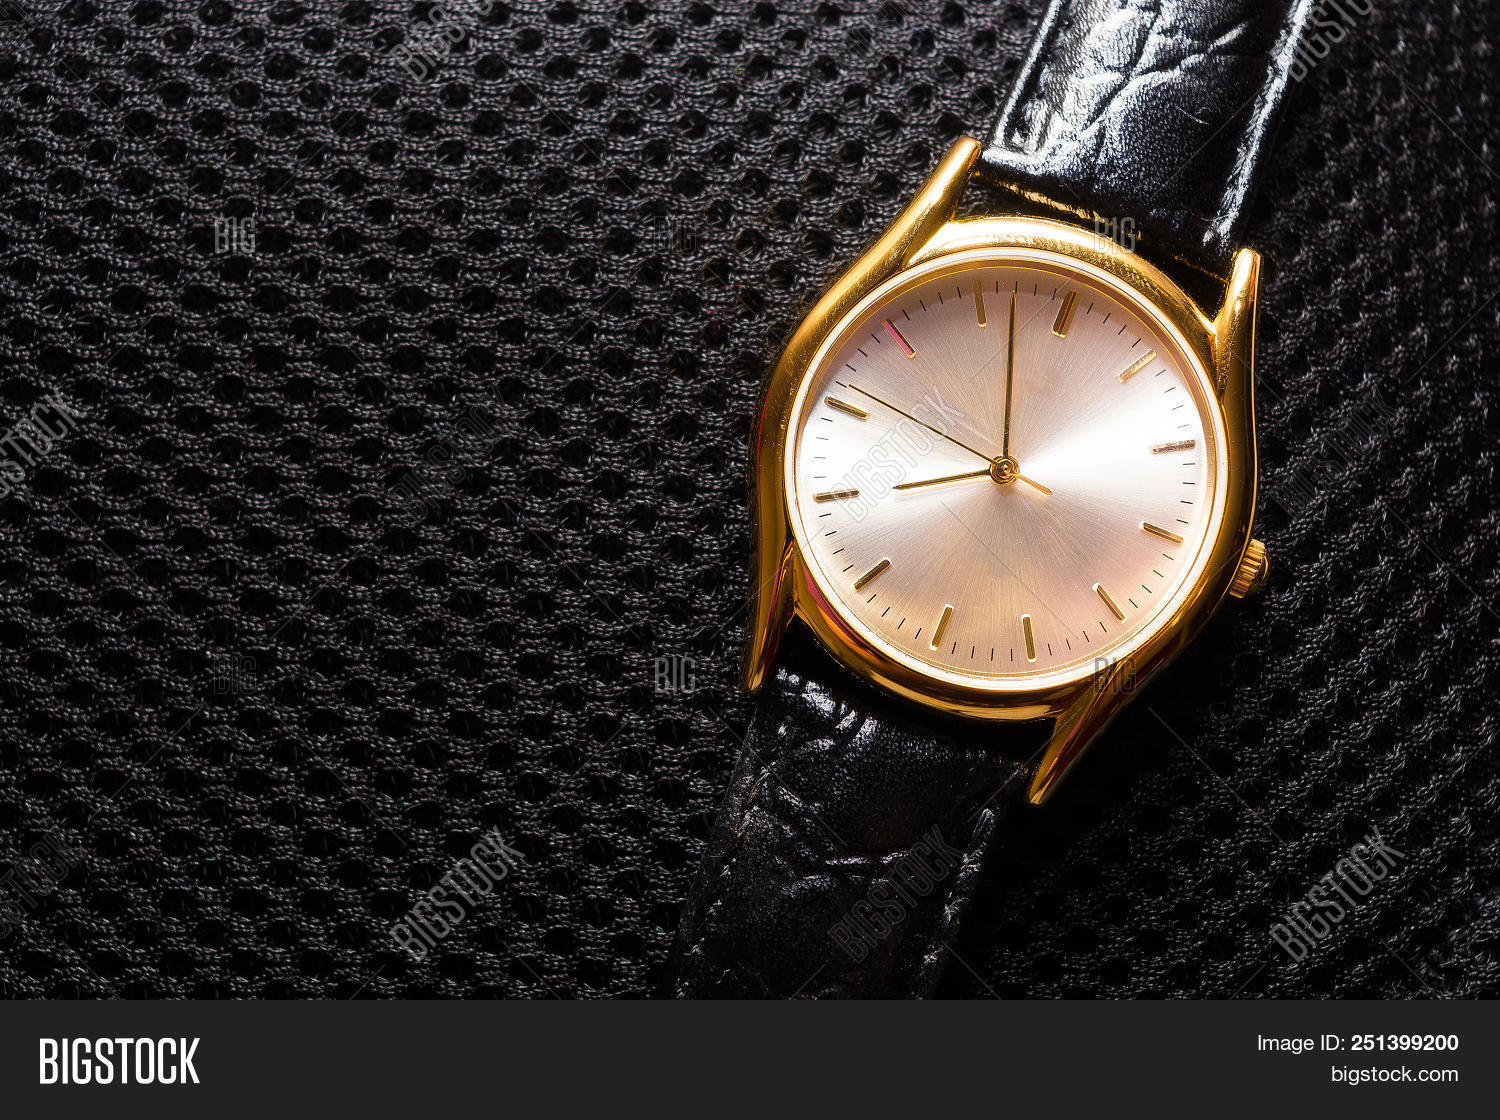 d60172c83 Gold metal watch. Black fabric background pattern. Clock hands. Black leather  strap. Time.